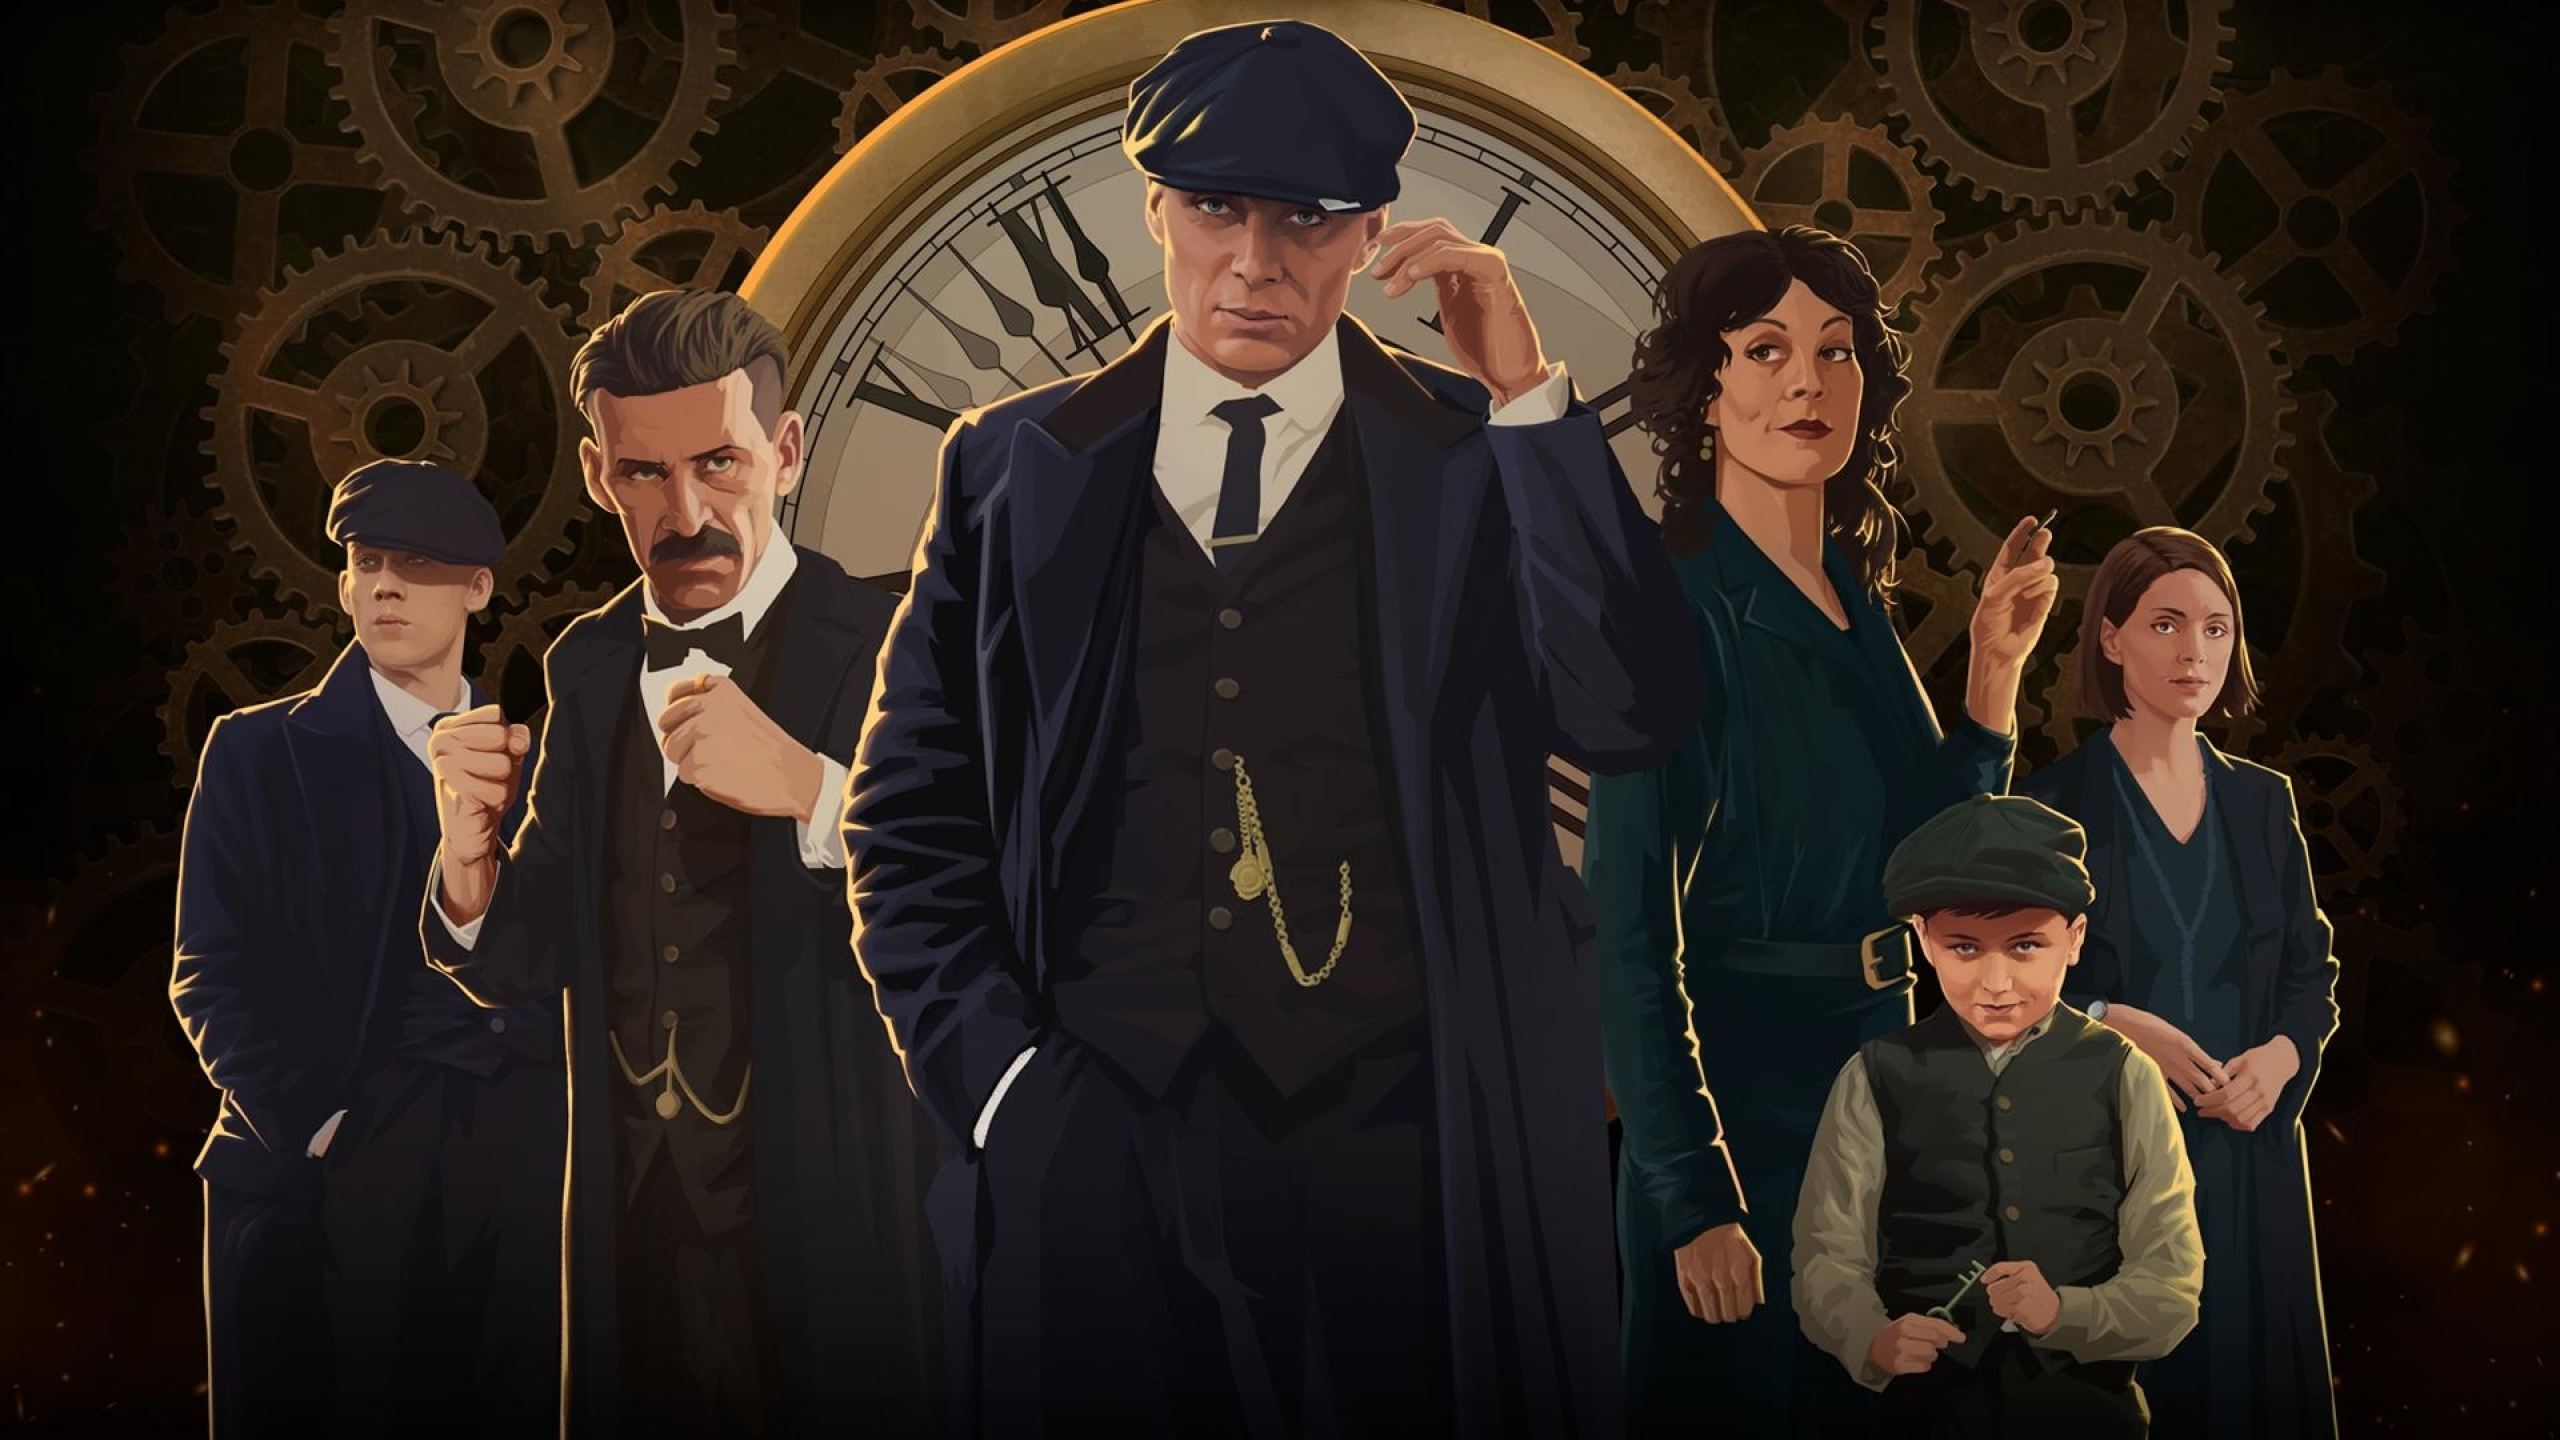 2560x1440 Peaky Blinders Game 1440p Resolution Wallpaper Hd Games 4k Wallpapers Images Photos And Background